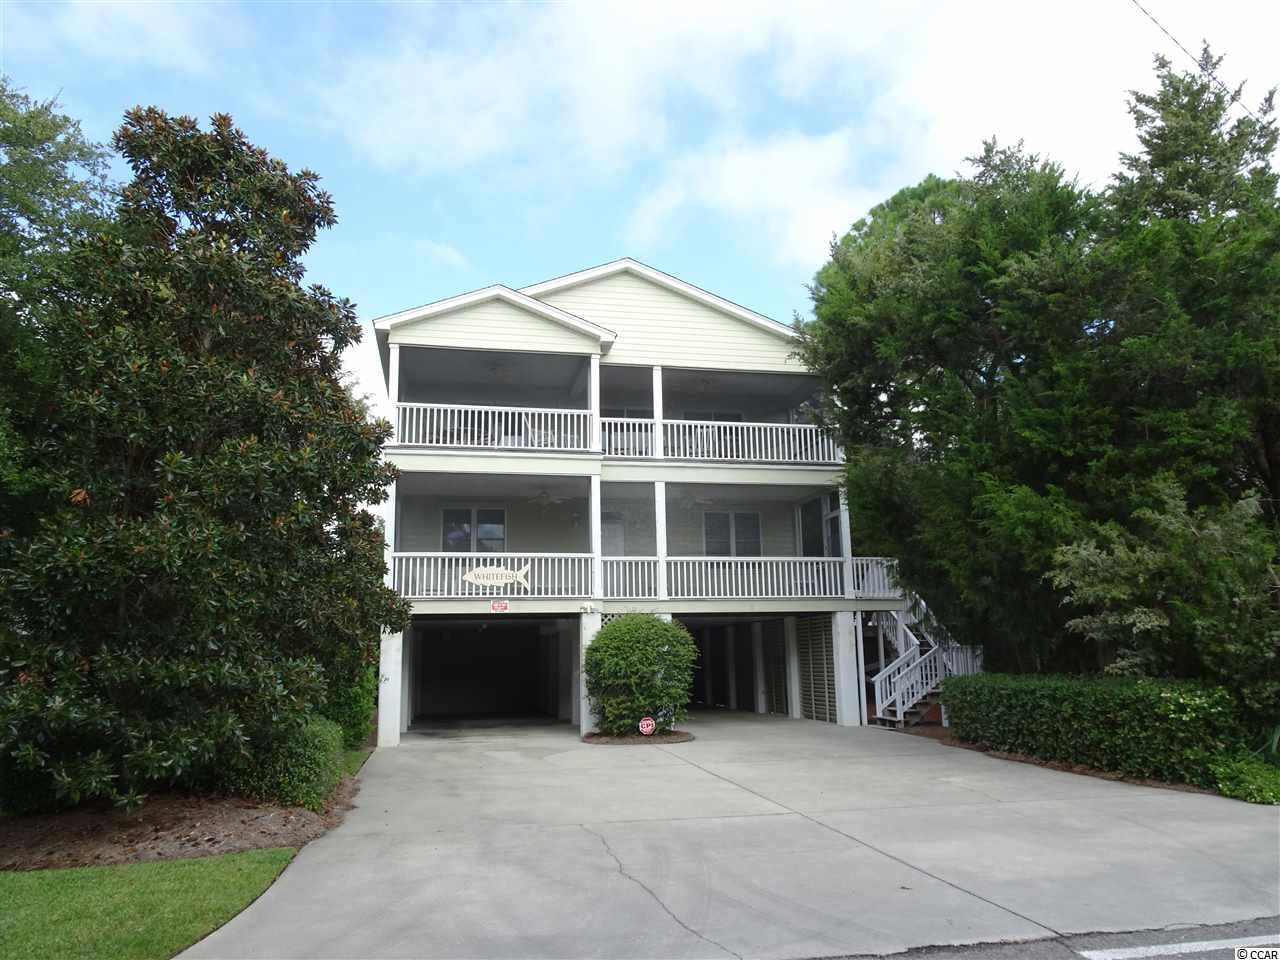 """Interval Ownership: 4 weeks per year. Enjoy four beautiful seasons of the year on the South Carolina Coast in this stunning second row beach home locally known at """"Whitefish"""". This beautiful home features 5 bedrooms and 6 full baths with an inverted floor plan allowing ocean views from the top floor living area and spacious front porch. The main living area is serviced by a 3 floor elevator and features a large open living space with fireplace flanked by a lovely dining area, recently updated kitchen, den/game room, spacious master bedroom suite and a screened porch for wonderful outdoor living. The second, lower level features 4 bedrooms each with a private bath, laundry room with personal lockers, a large rec room and another spacious front porch. The home features beautiful, comfortable furnishings throughout, heart of pine floors in the living areas, and whitewashed pecky cypress paneling. Ample parking and storage underneath along with outdoor showers. Beach access is just across the street. No pets, no smoking but rental allowed. All contracts subject First Right of Refusal to current owners.  Come enjoy all the beauty and life style of Whitefish and North Litchfield Beach...at a fraction of the cost!"""